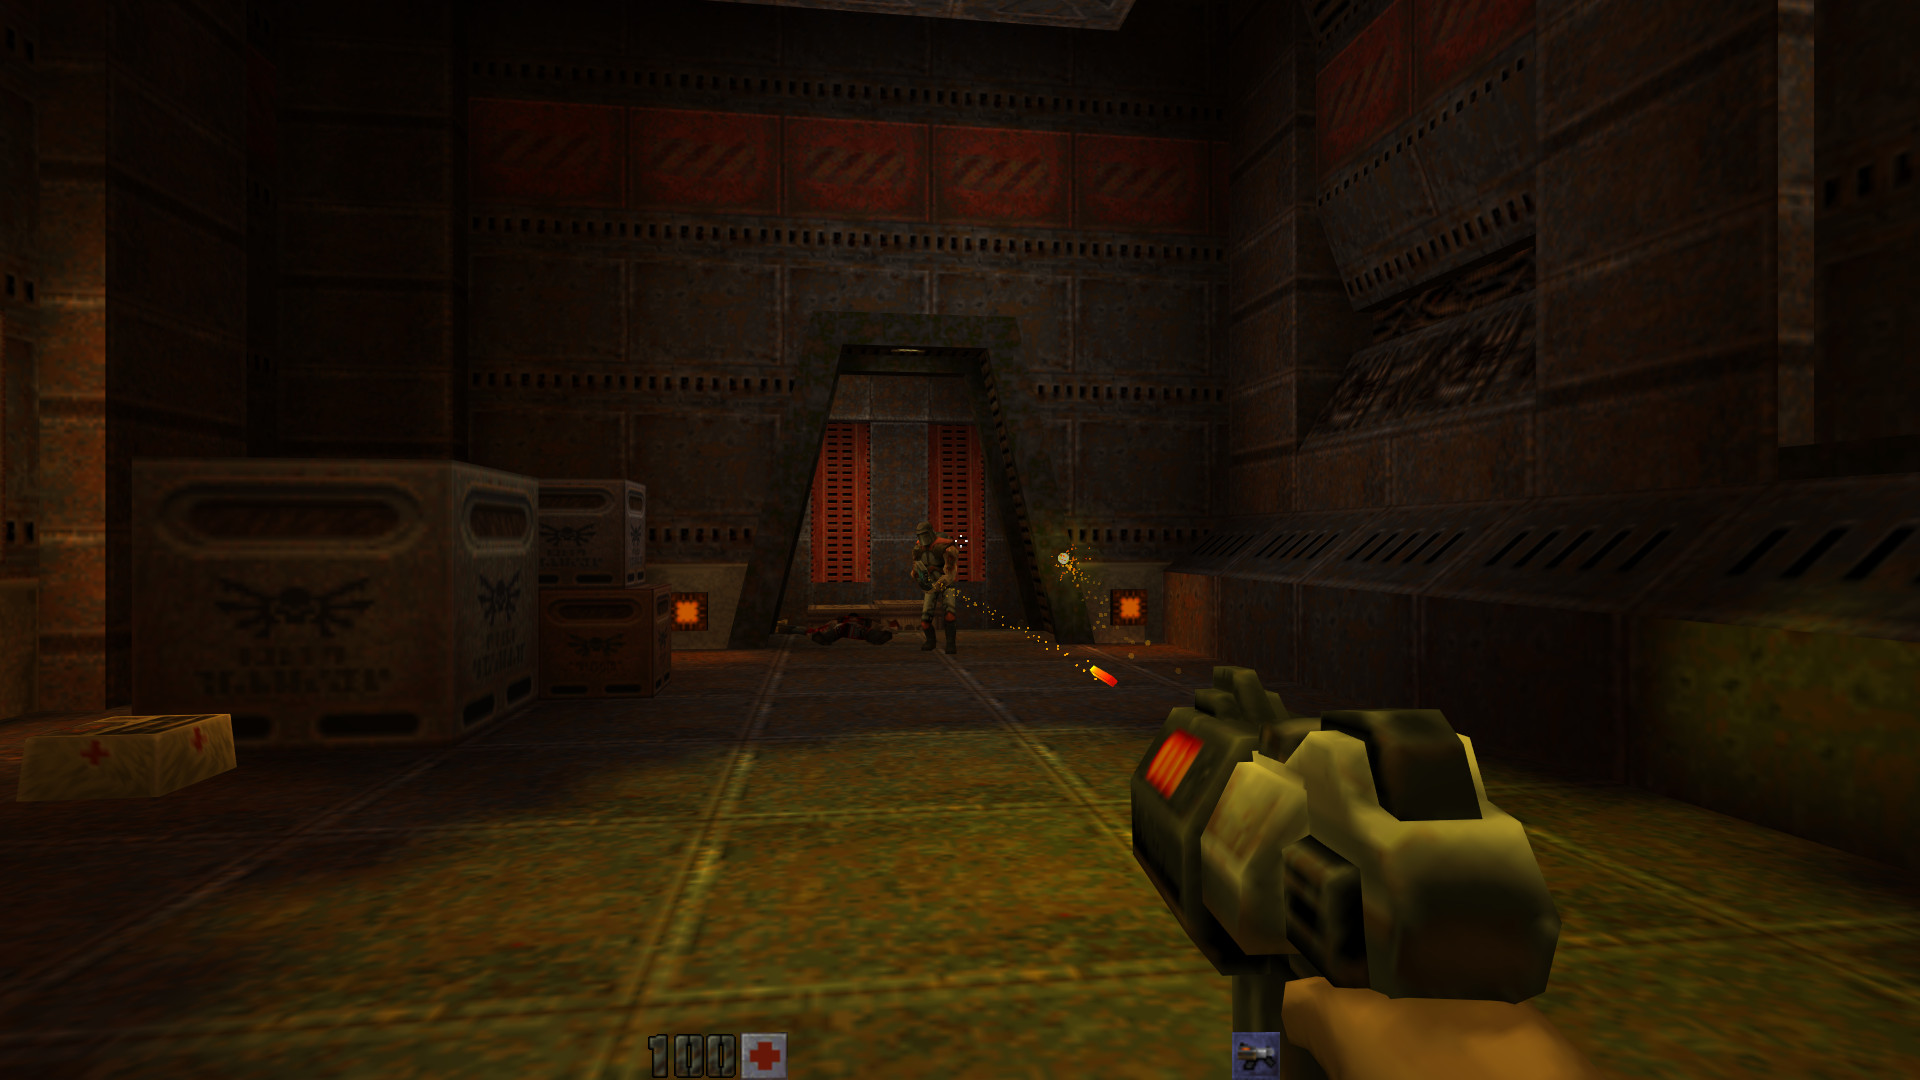 vkQuake2, the project adding Vulkan support to Quake 2 now